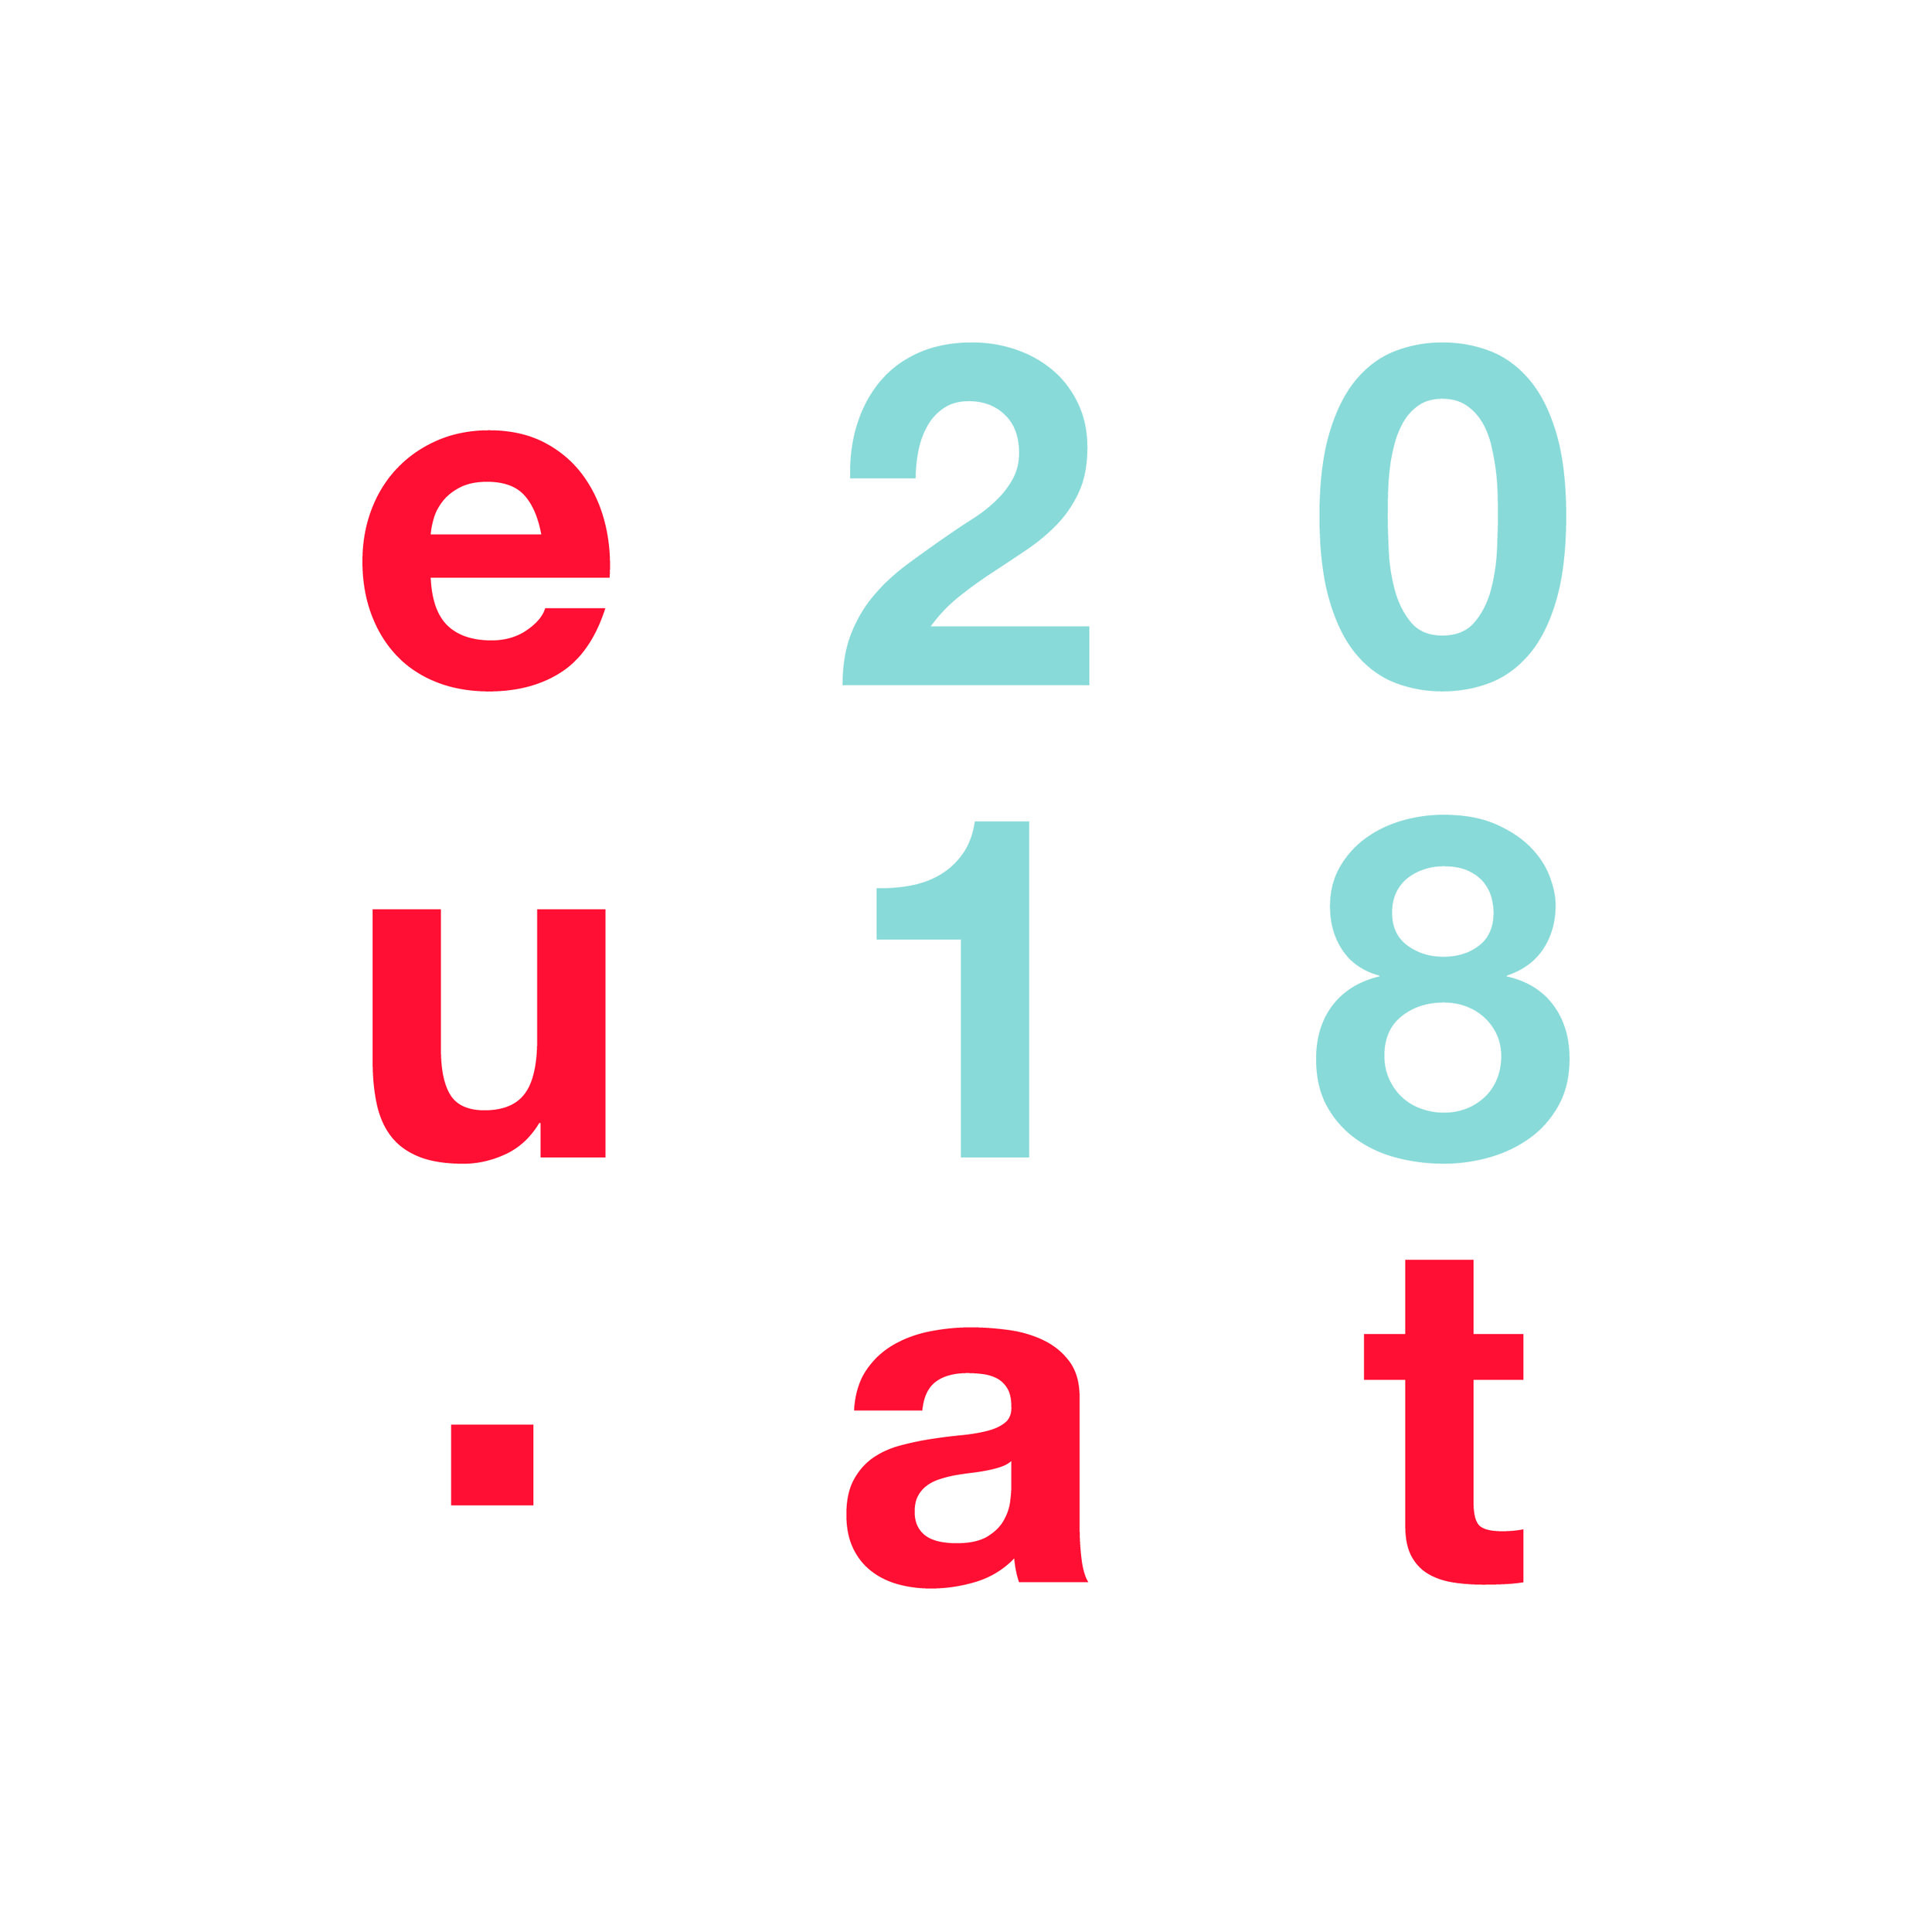 Logo_eu2018at_red_blue_4C.jpg